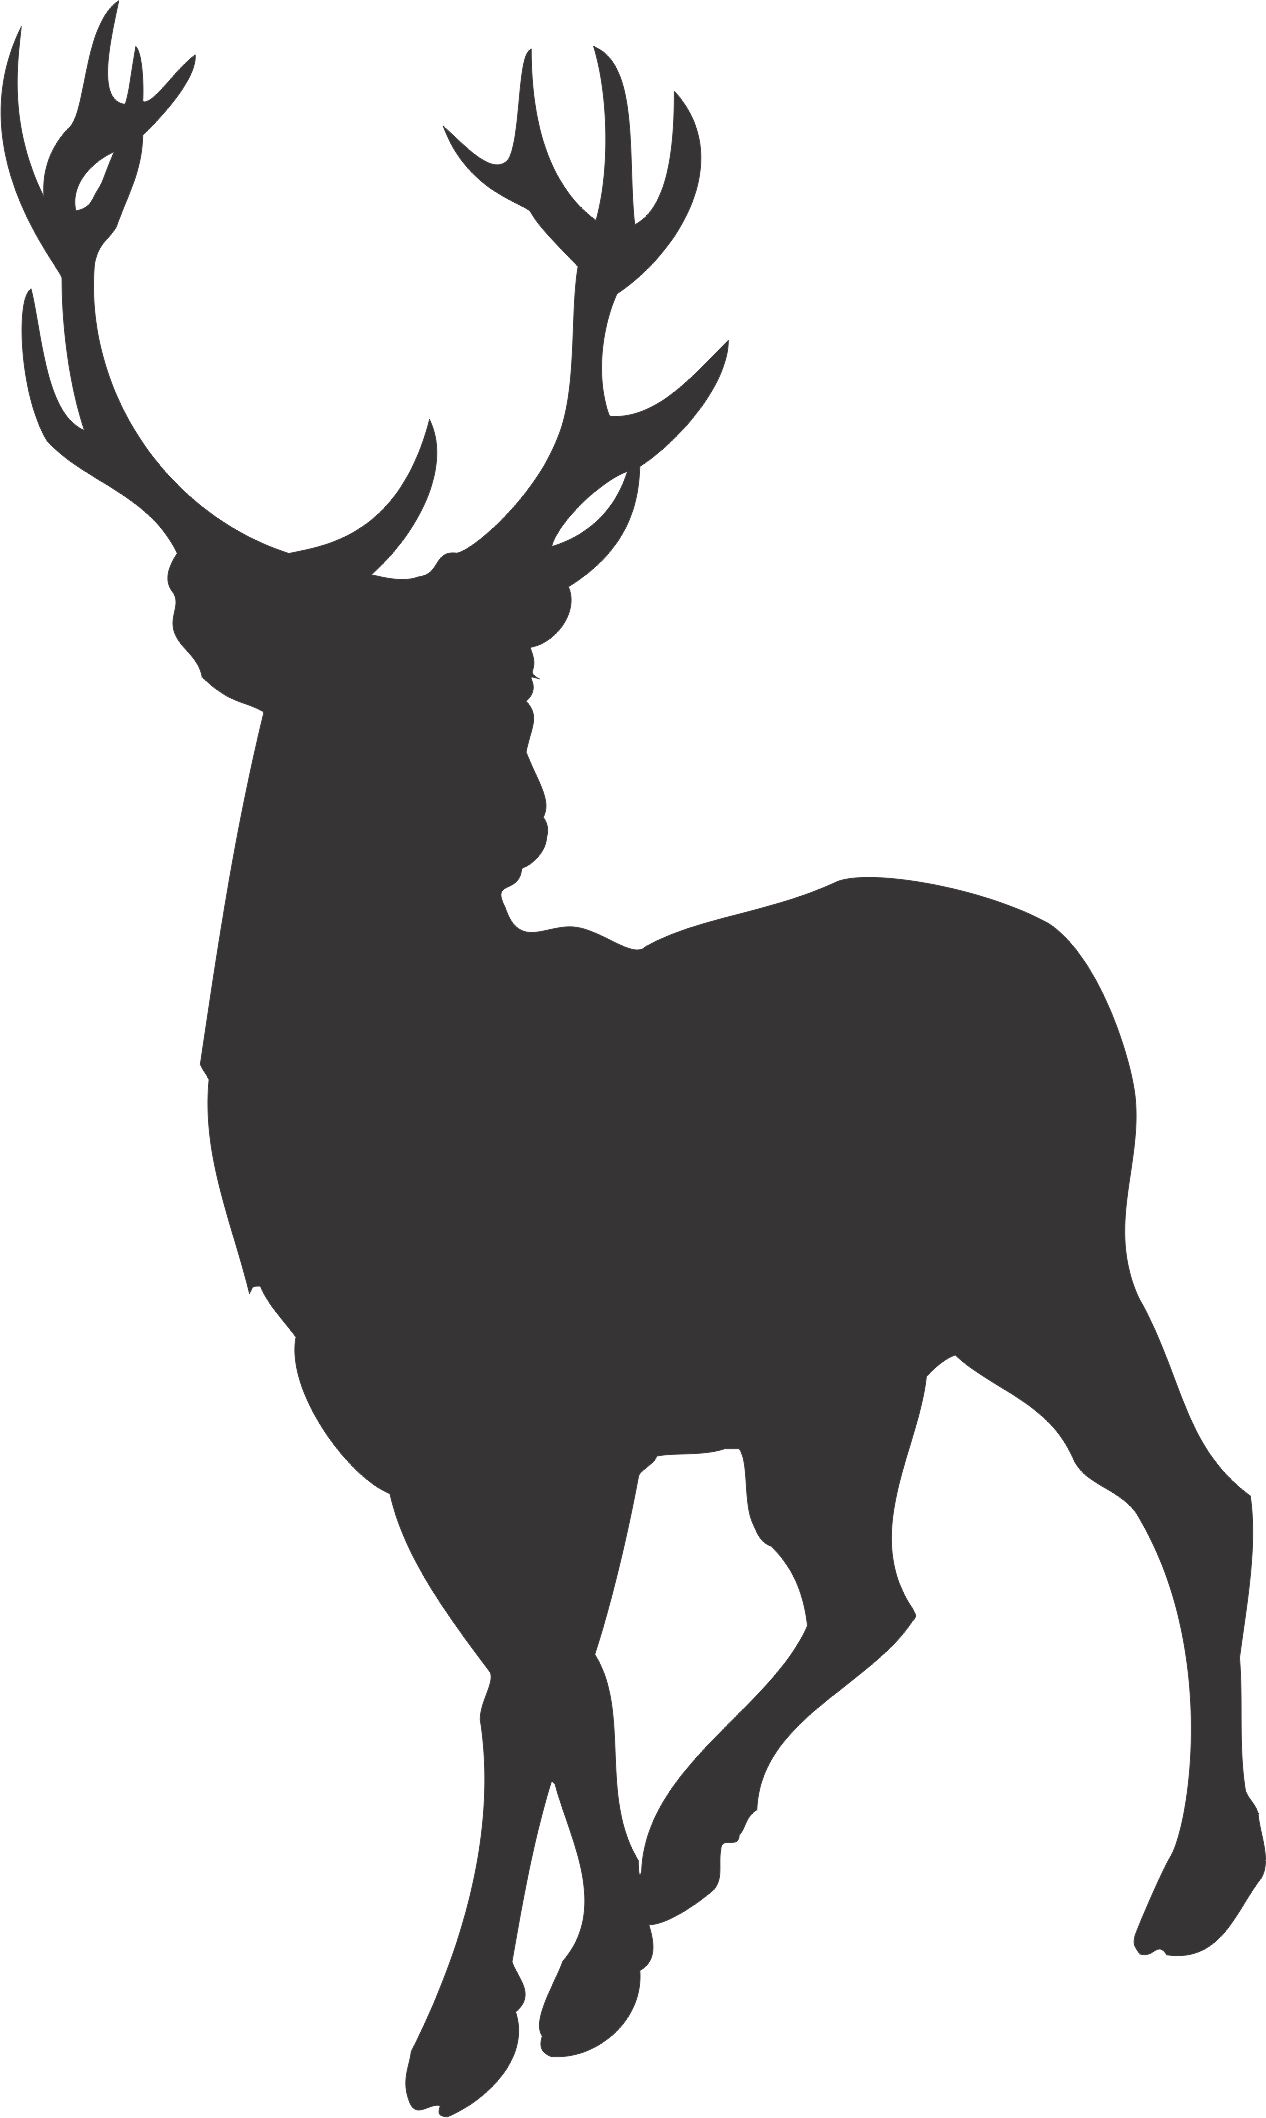 Antler clipart baby deer. Free download stag silhouette